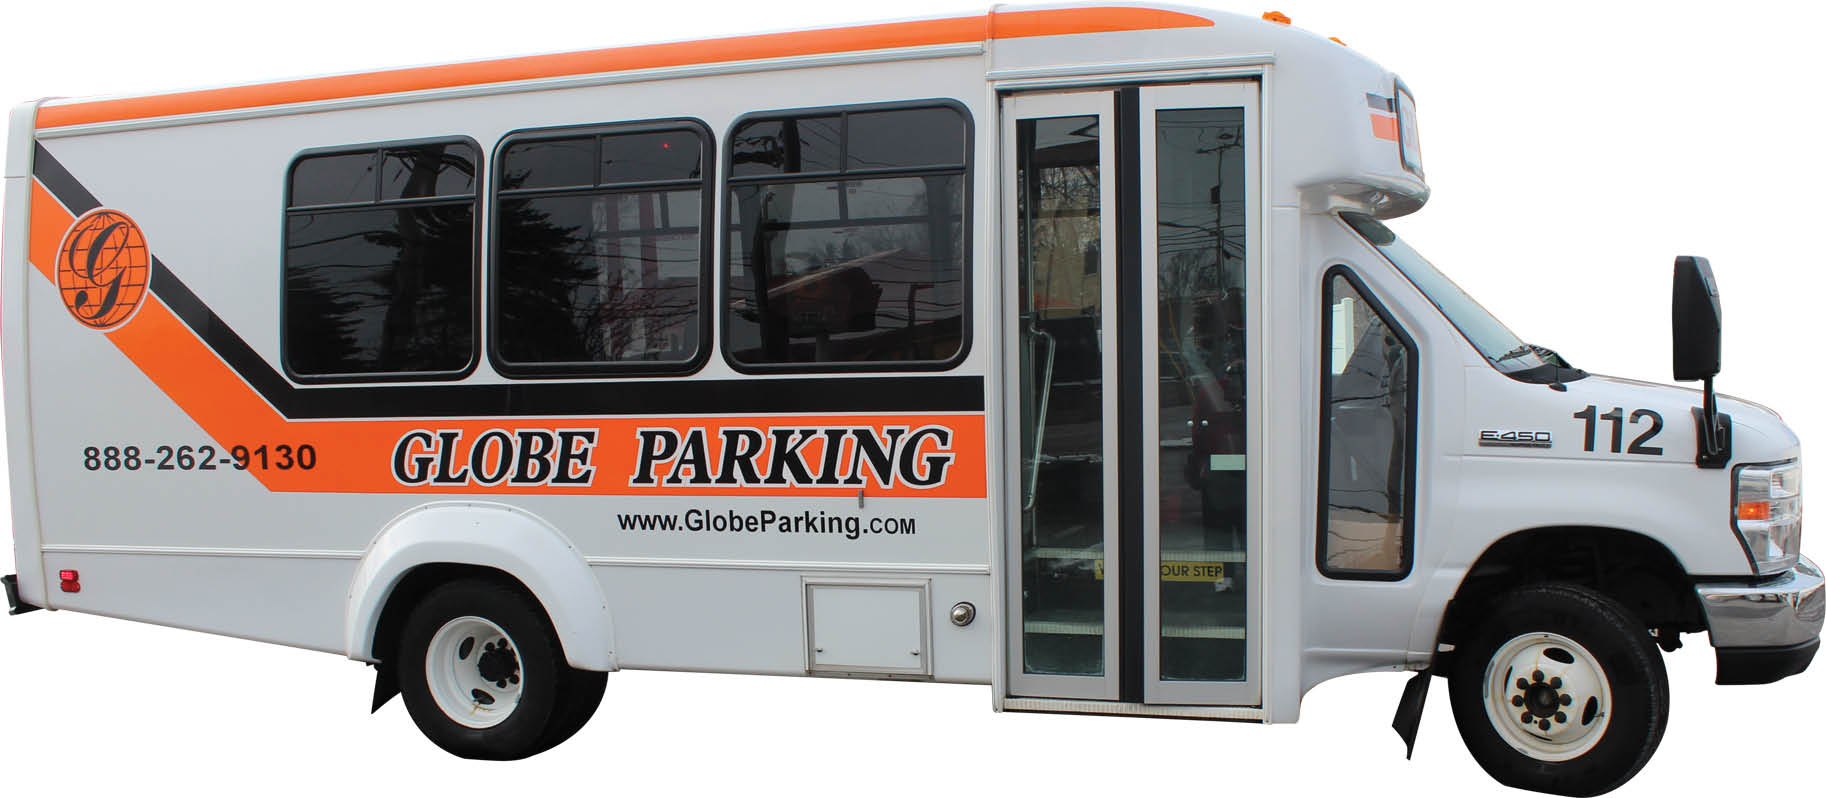 Photo of convenient airport parking shuttles from Globe Parking in Pittsburgh PA